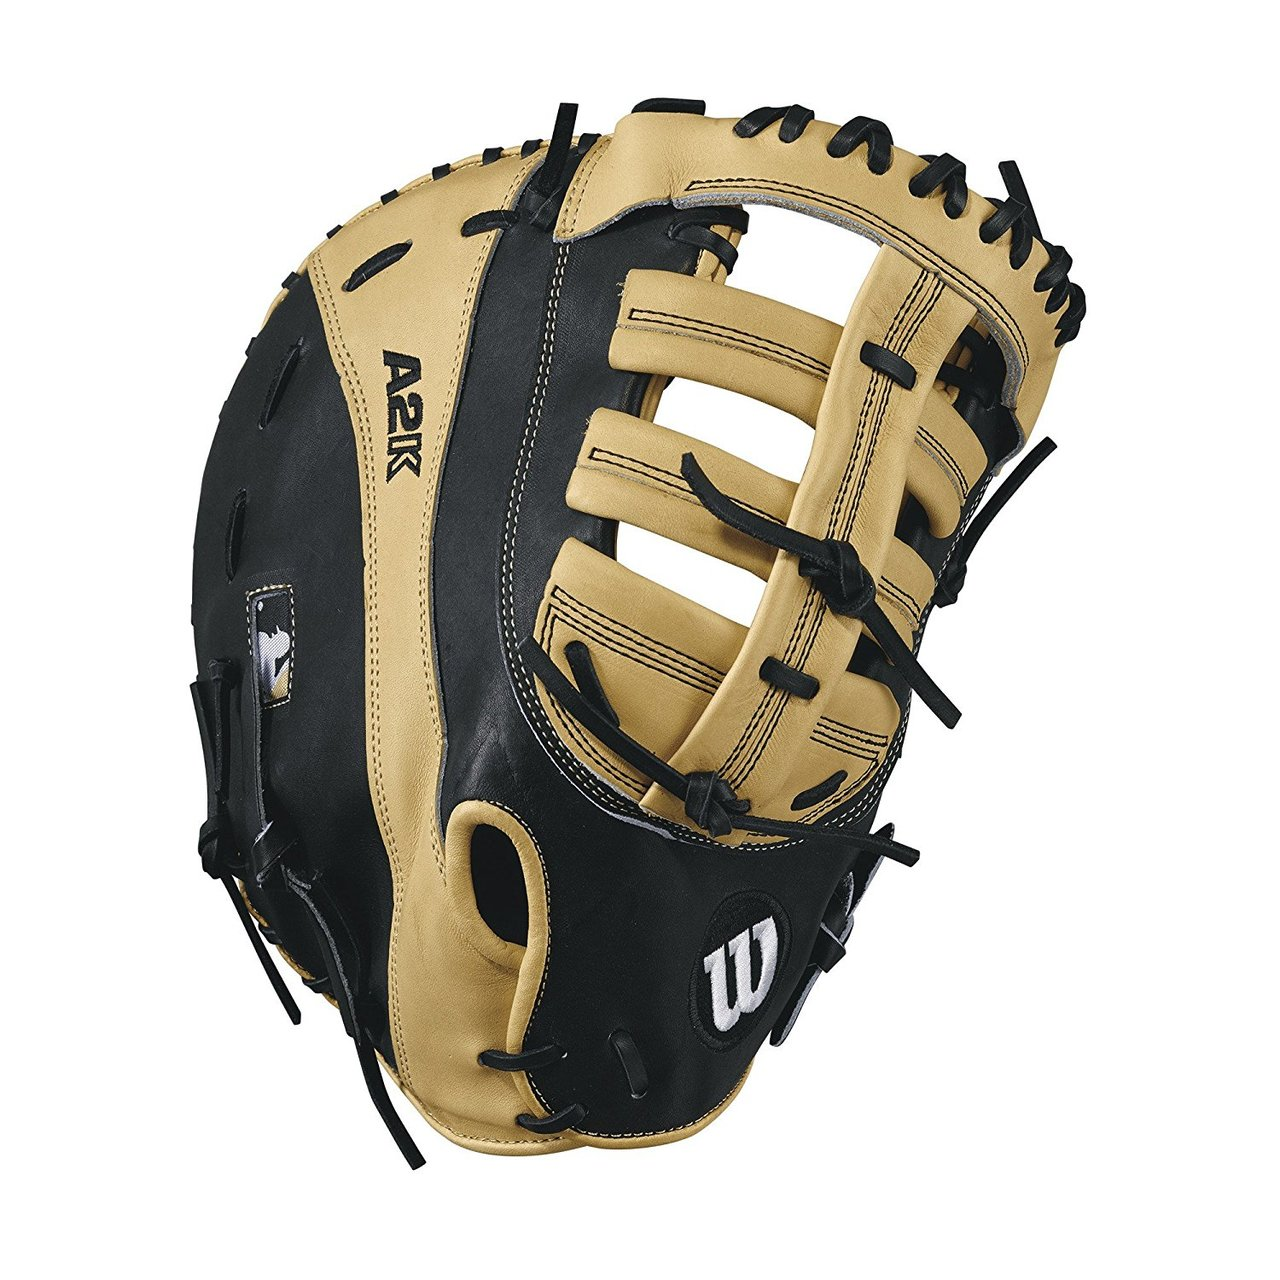 wilson-a2k-2800-12-inch-first-base-mitt-left-hand-throw WTA2KLB172800-LeftHandThrow Wilson 887768502058 Reinforced single post web Double heel break design Pro stock leather